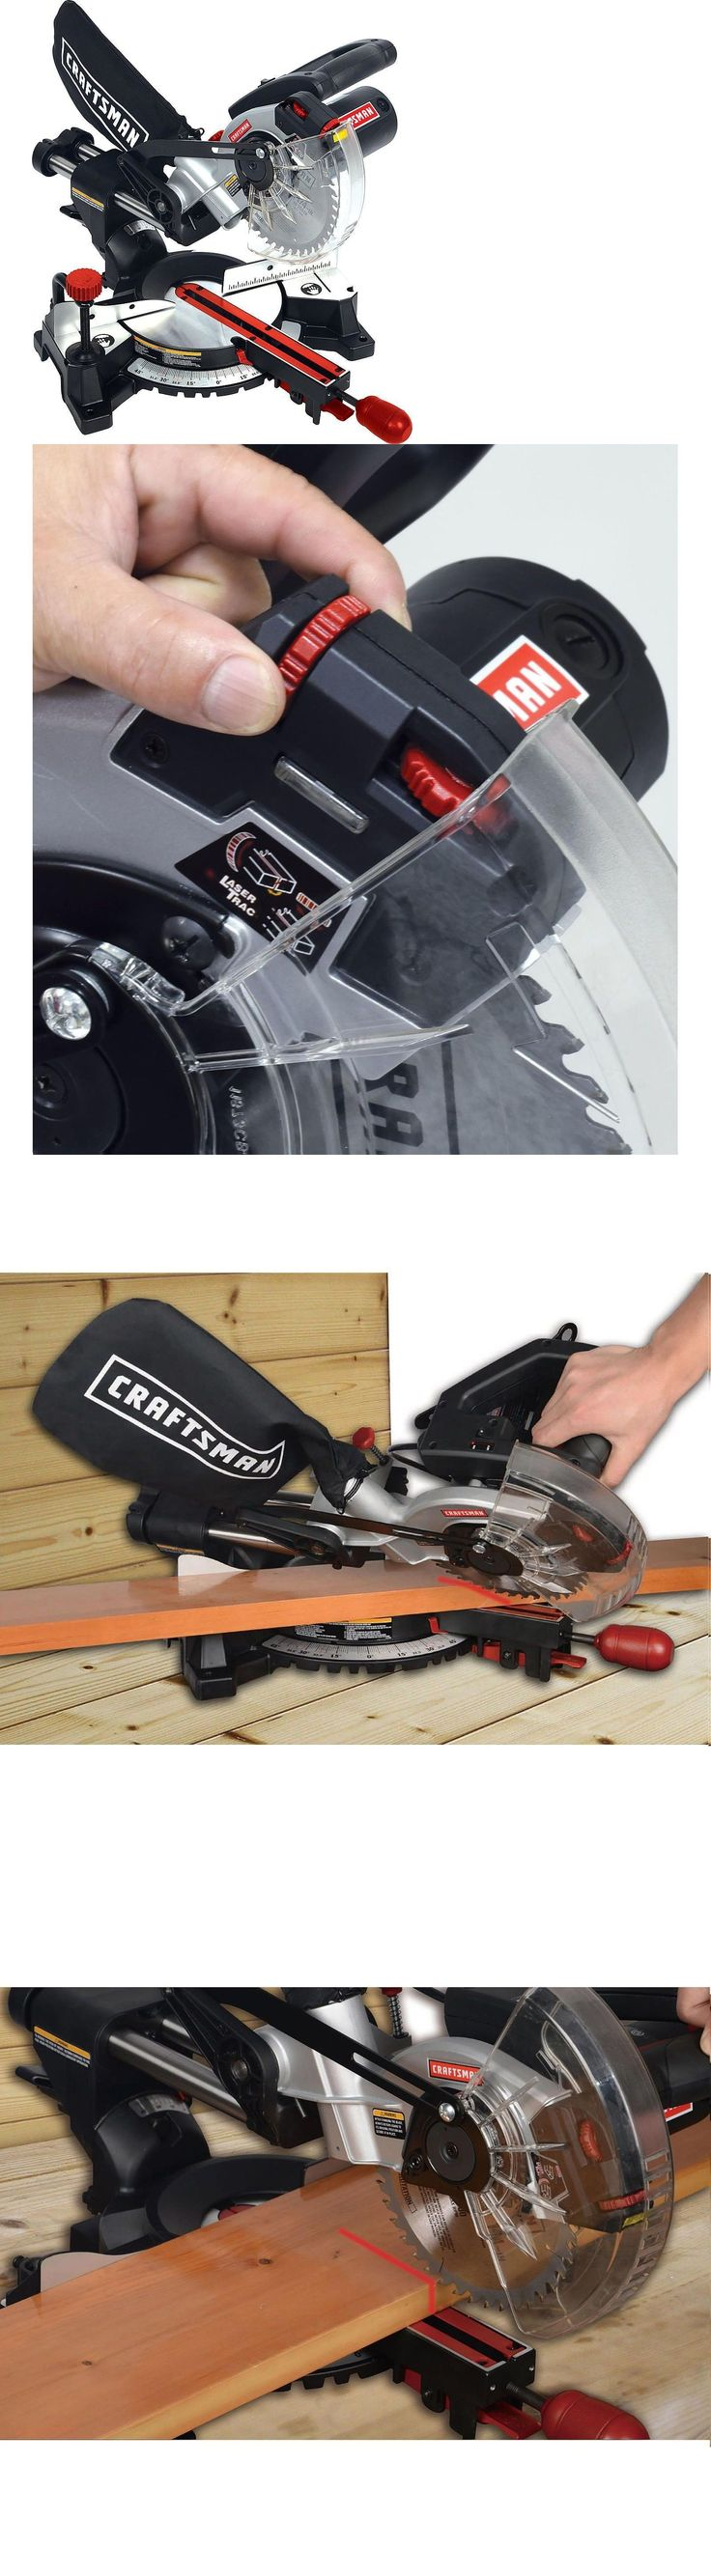 Miter and Chop Saws 20787: Craftsman 7 1 4 Inch Laser Trac Sliding Compound Miter Saw Bevel Sm1852rc New -> BUY IT NOW ONLY: $98.45 on eBay!